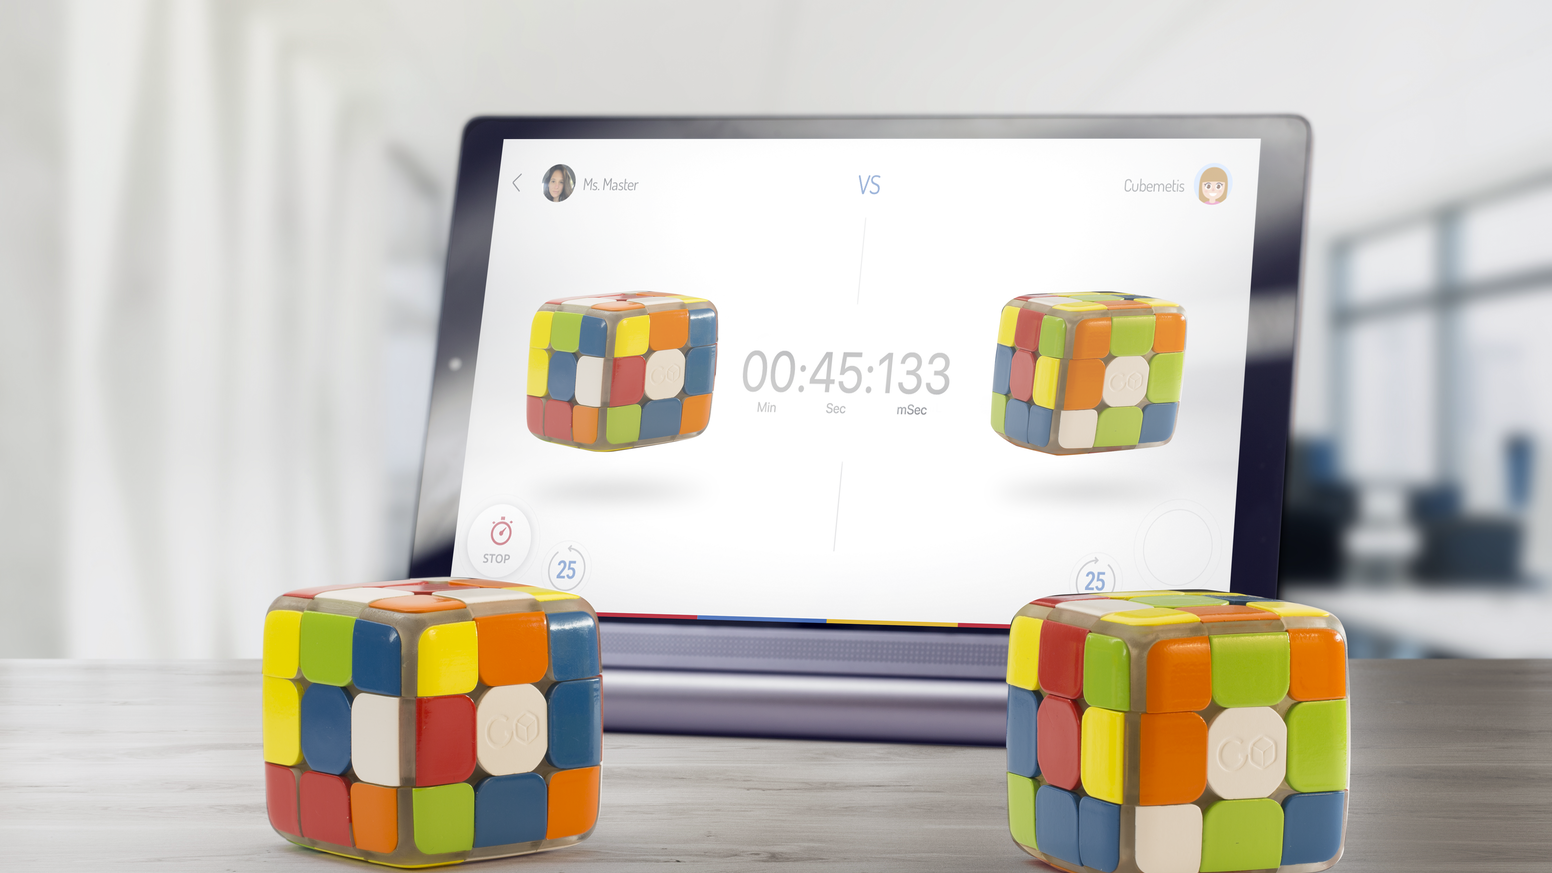 An incredible smart connected cube with tracking and whole new way to cube. Learn, improve, and even compete.